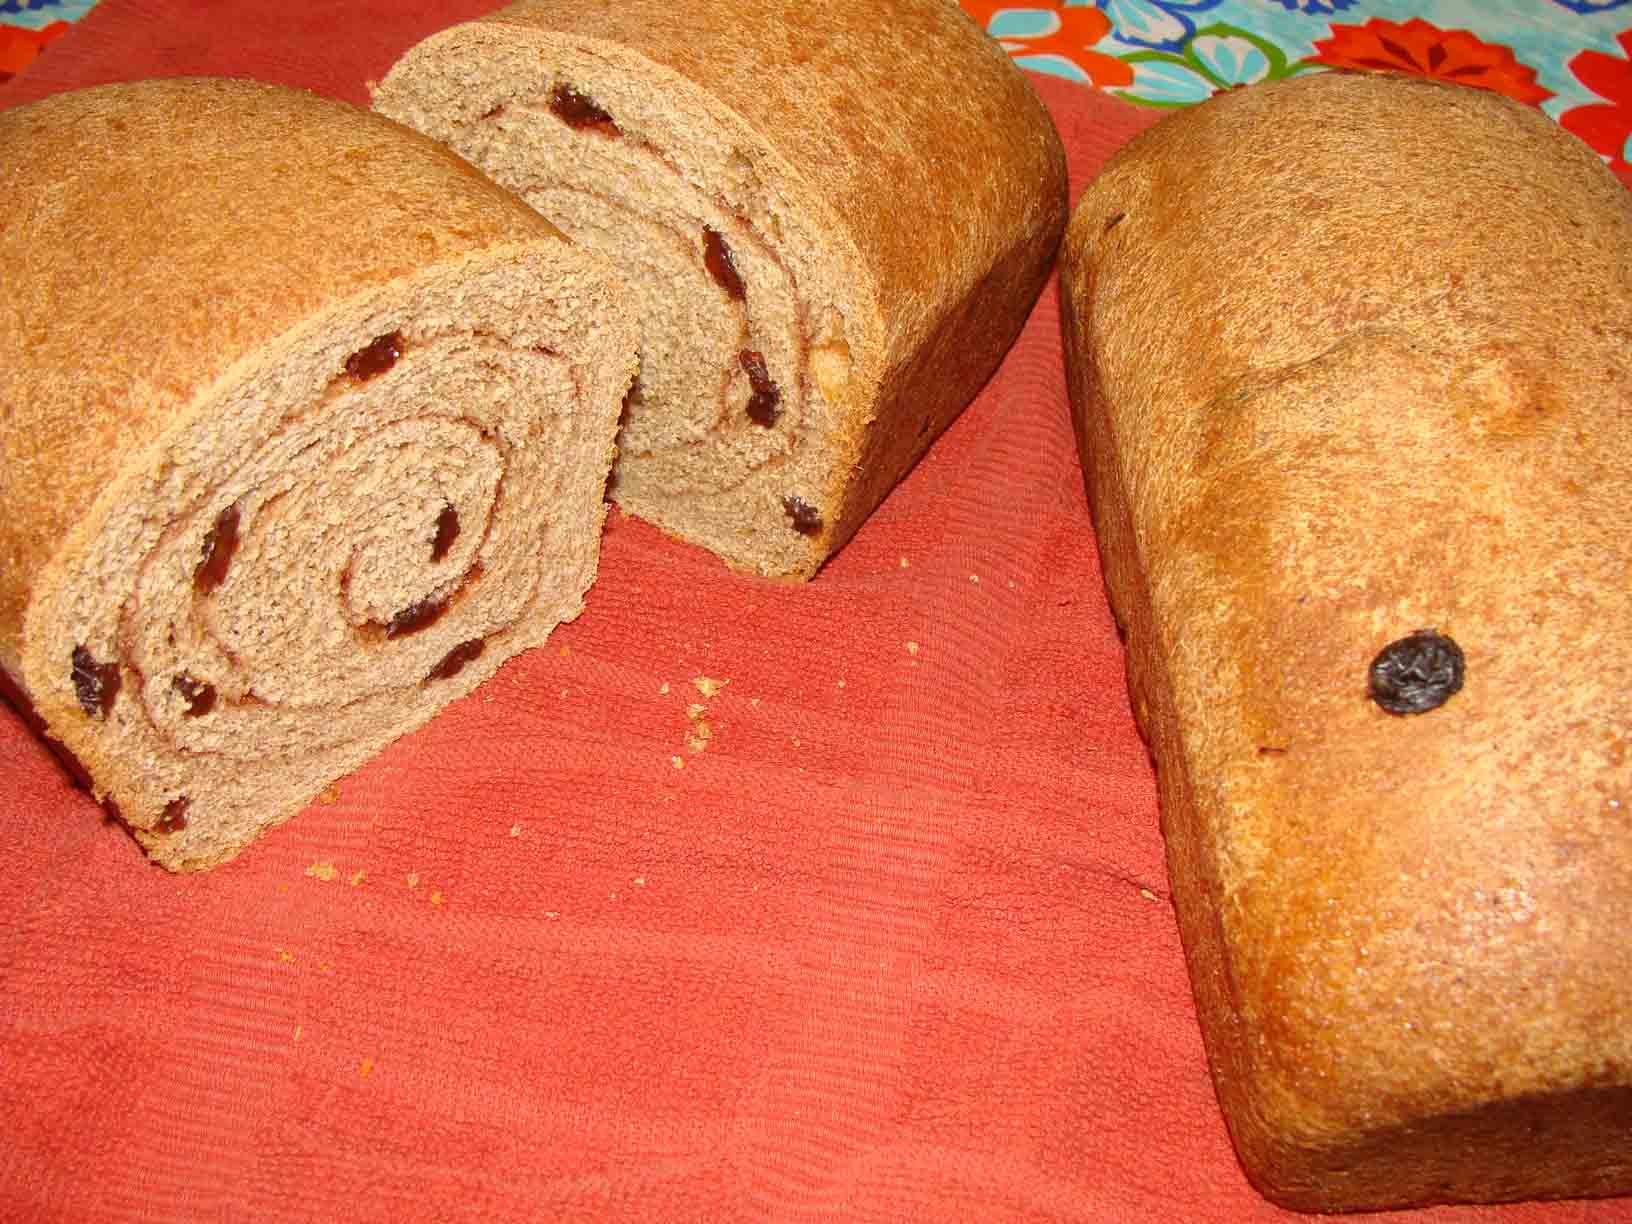 Click to enlarge 100% Whole Wheat Cinnamon Raisin Bread